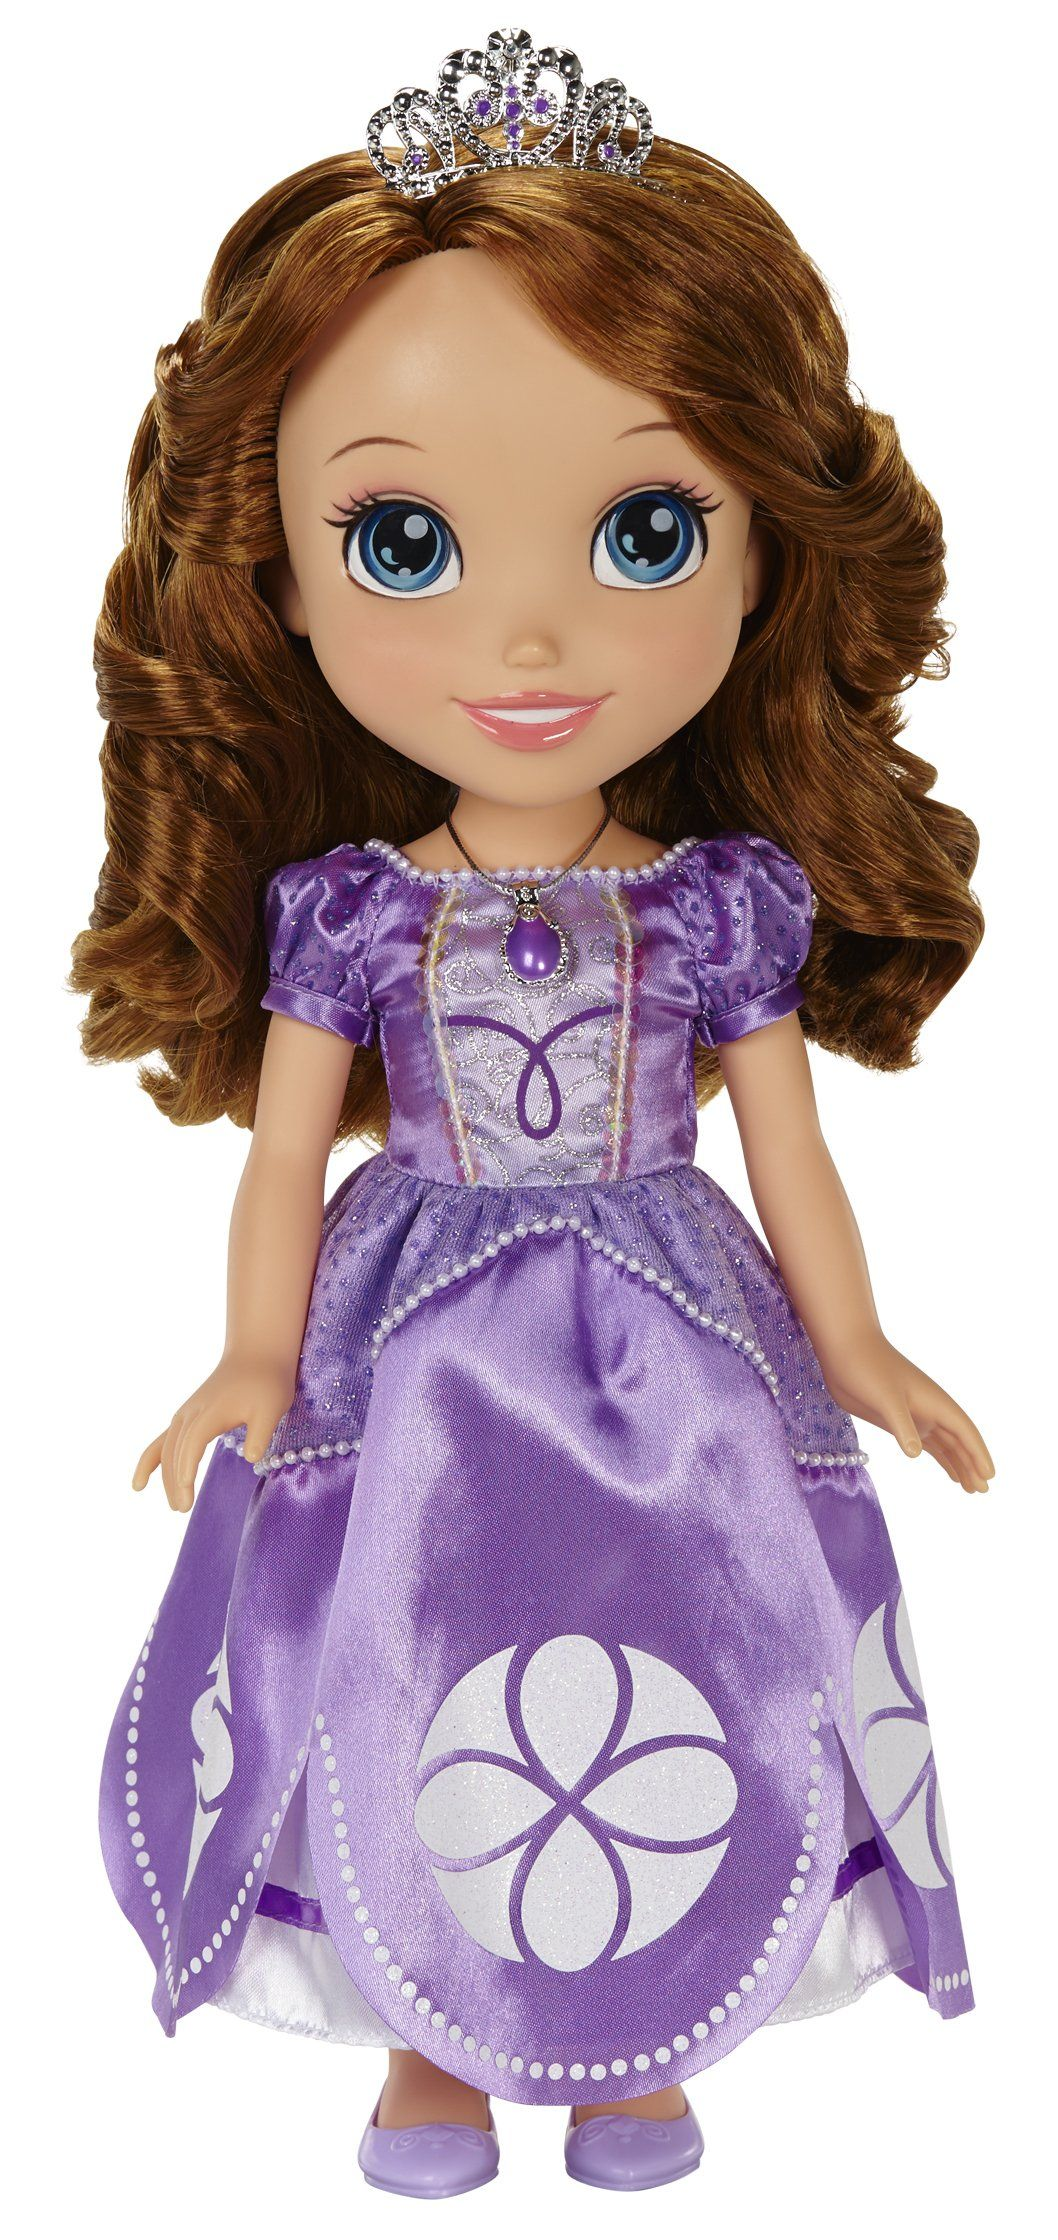 Sofia The First Toddler Doll: Amazon.co.uk: Toys & Games | moderne ...